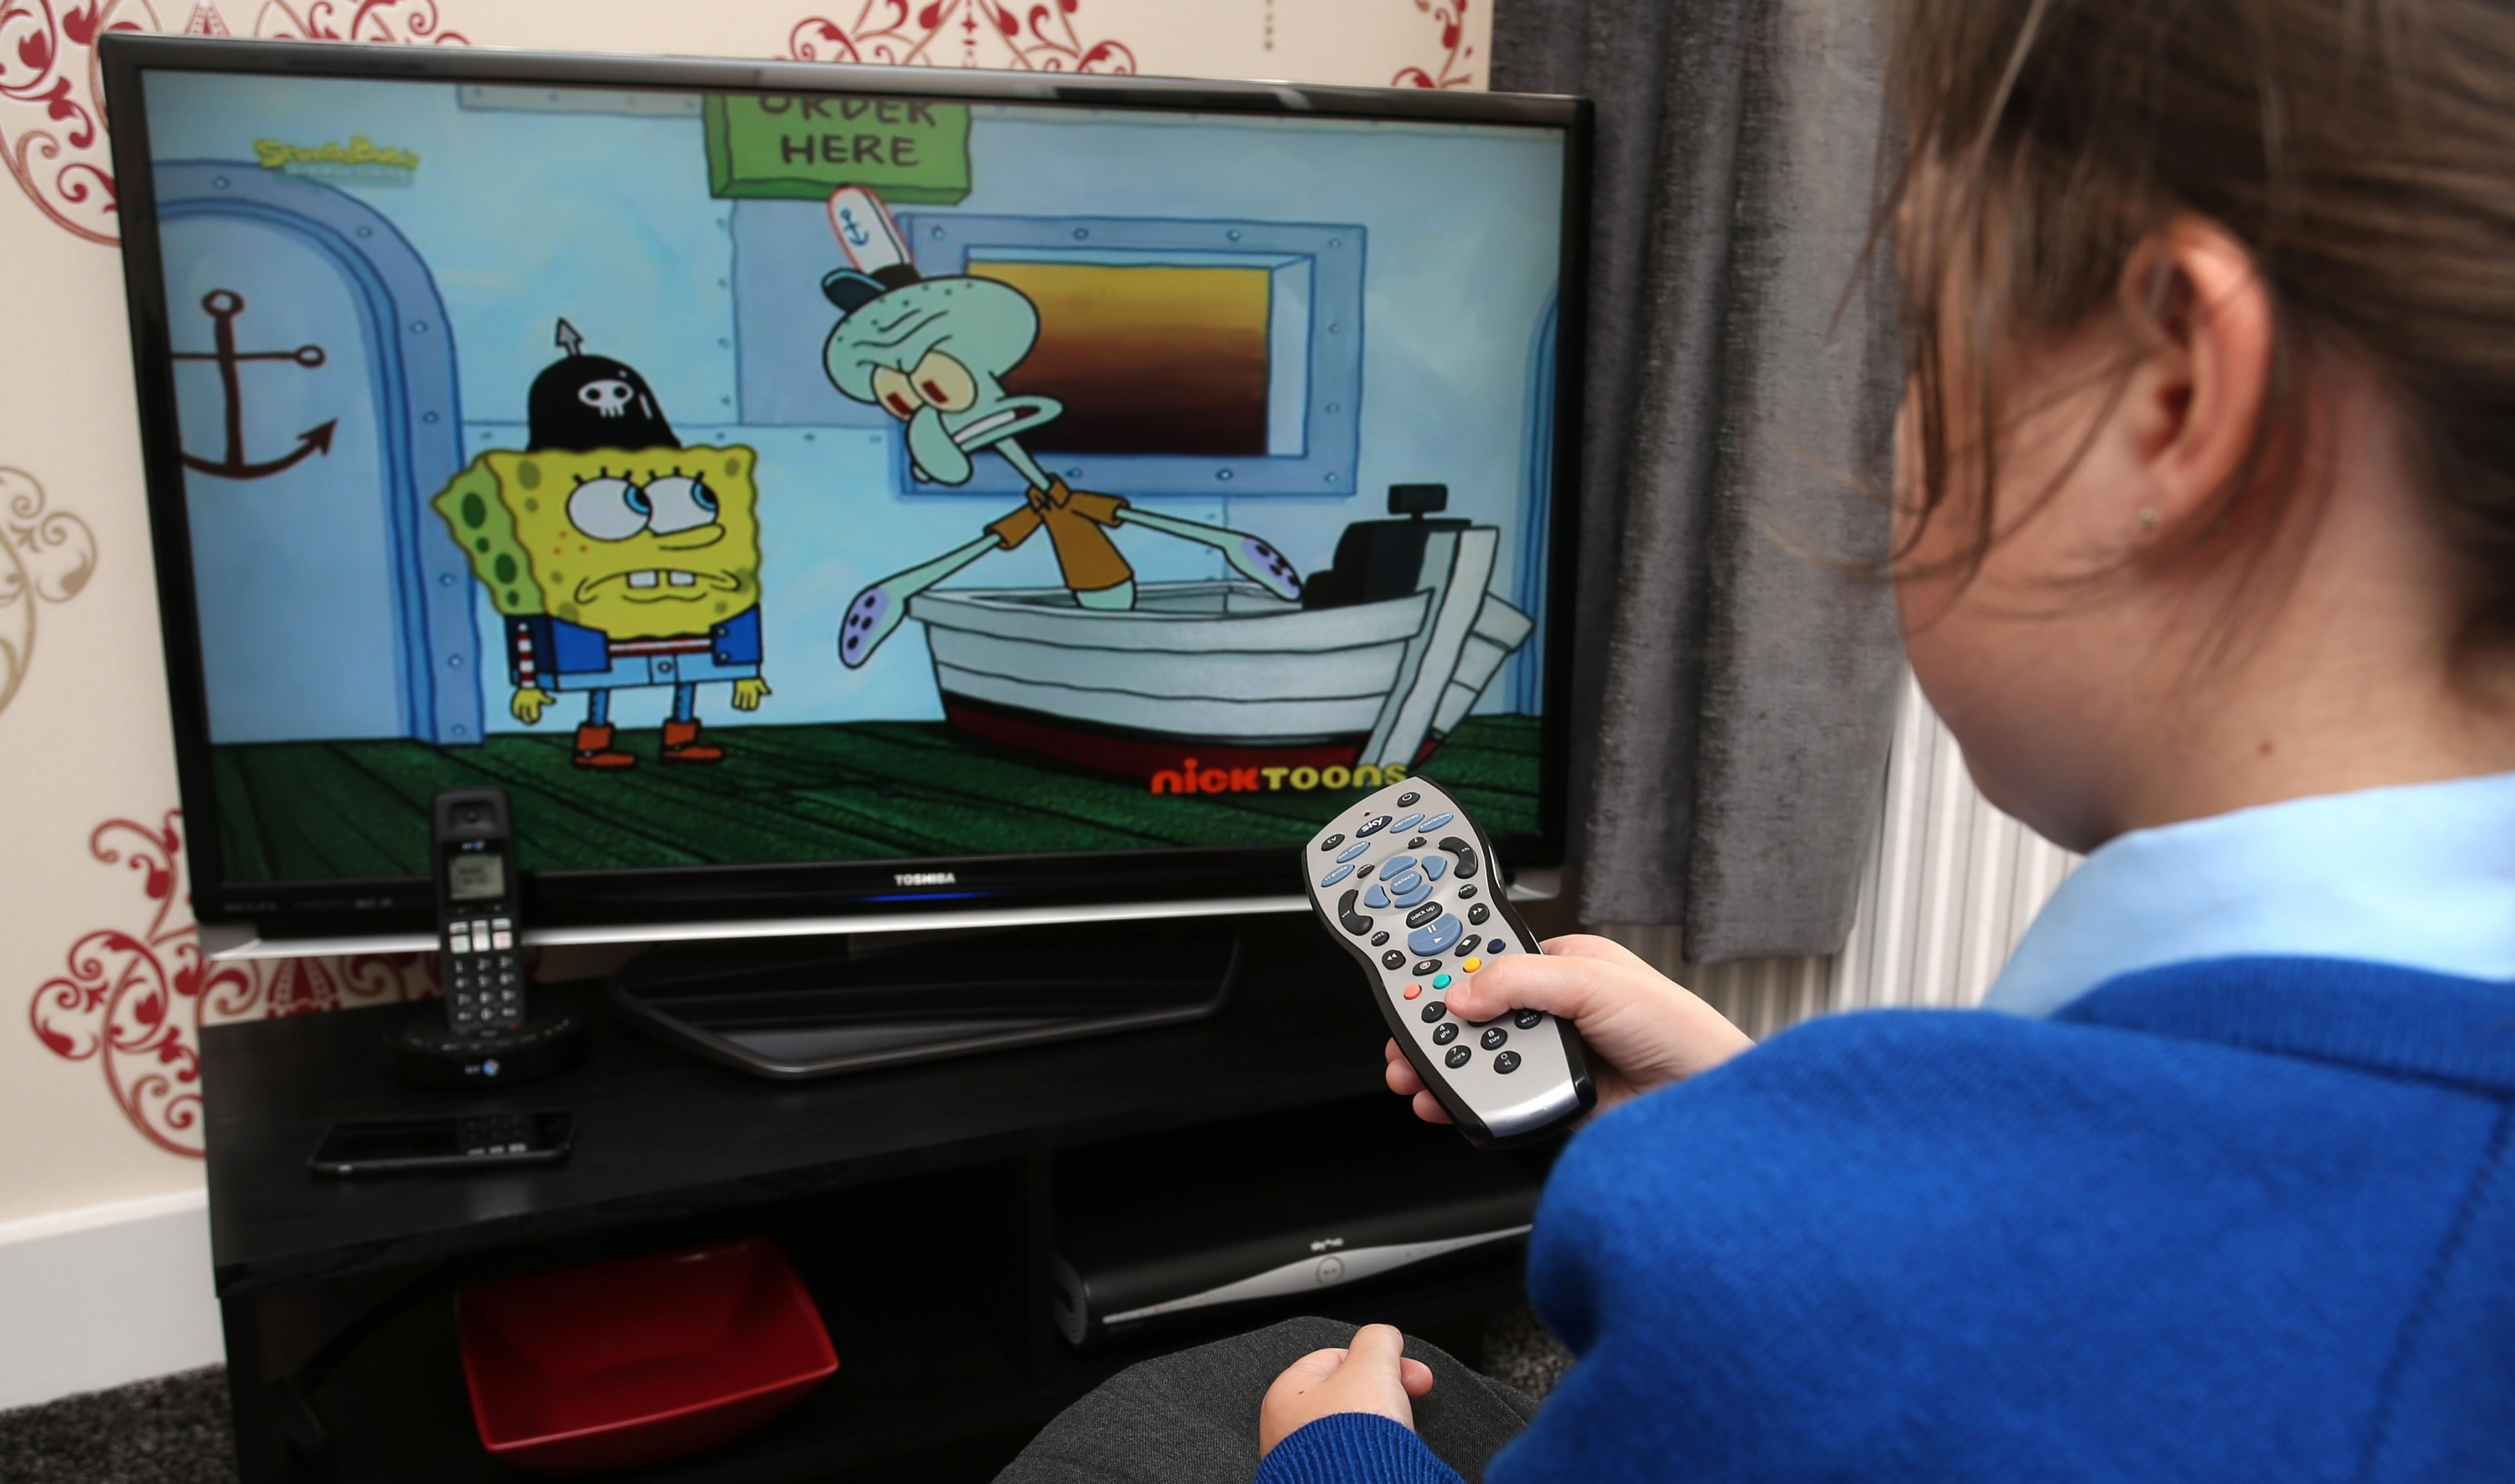 Latest research suggests background noise from television and radio can get in the way of young children picking up new words.